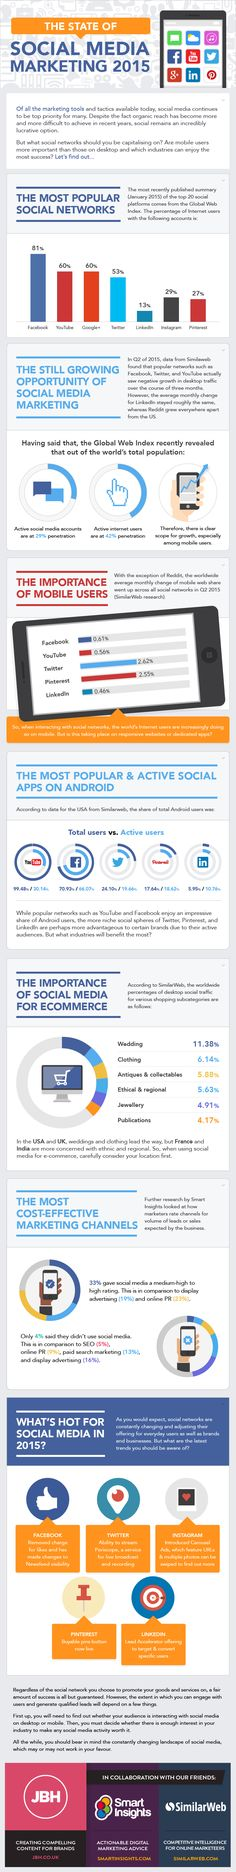 What does social media marketing look like in 2015? (Infographic)